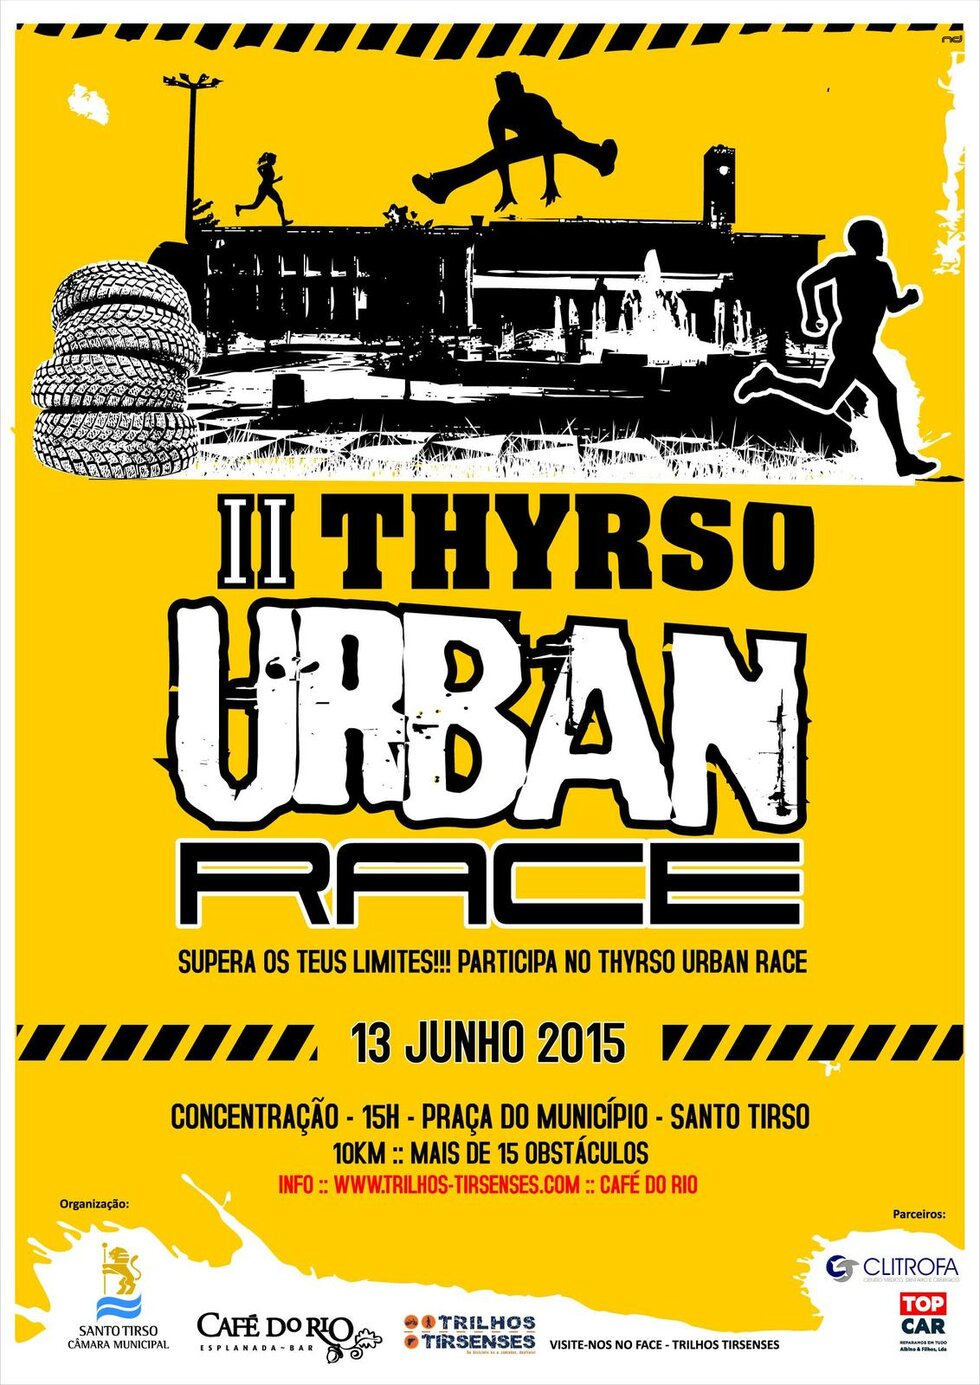 Thyrso urban race ii 001 1 980 2500